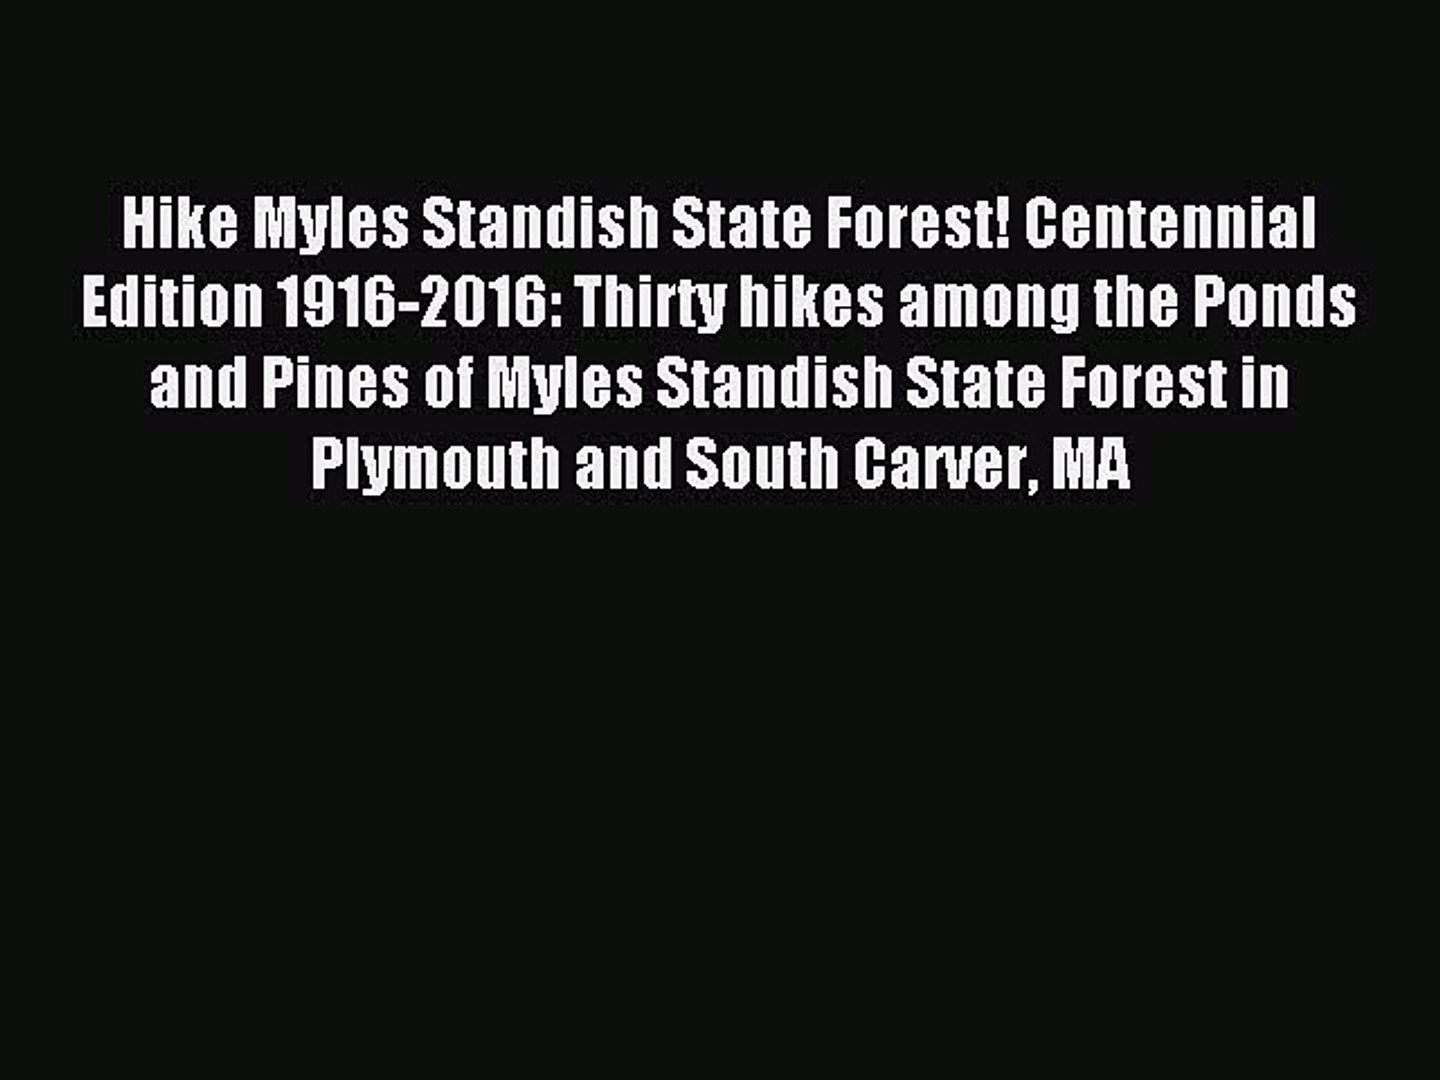 Read Hike Myles Standish State Forest! Centennial Edition 1916-2016: Thirty hikes among the